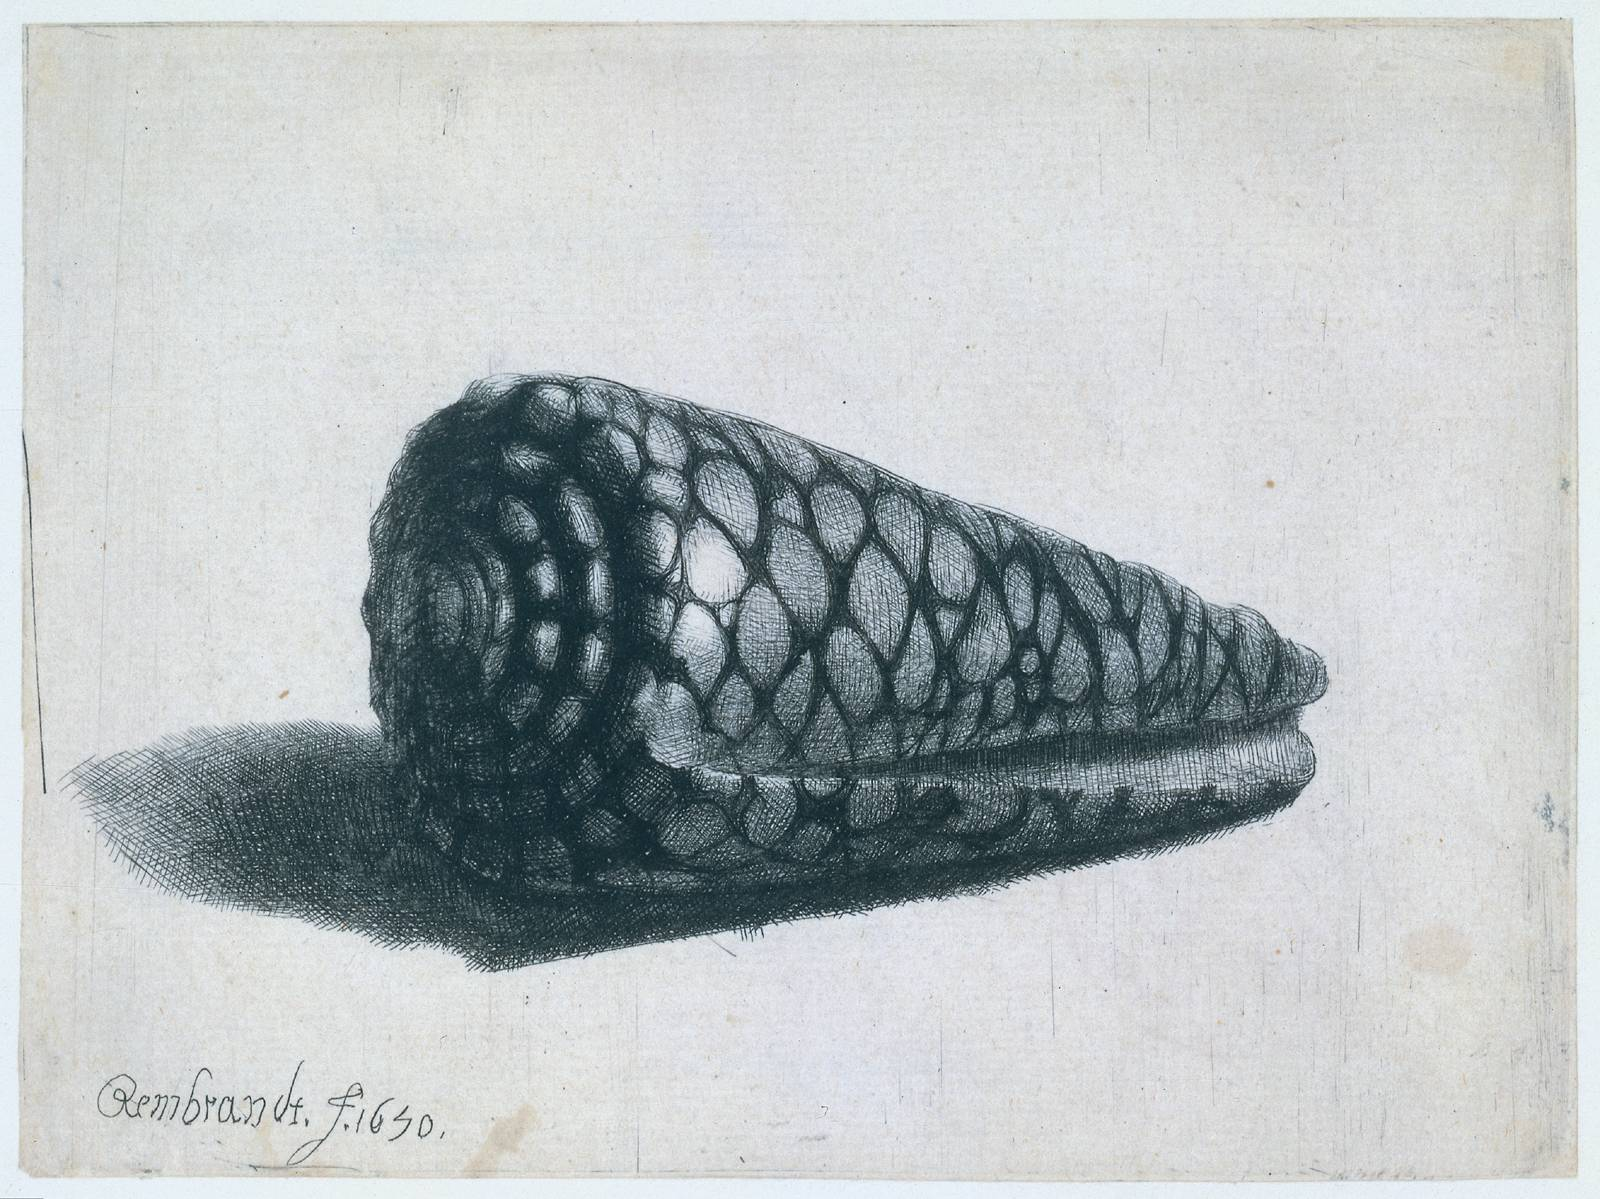 Rembrandt Exhibition Shell : The shell conus marmoreus rembrandt wikiart